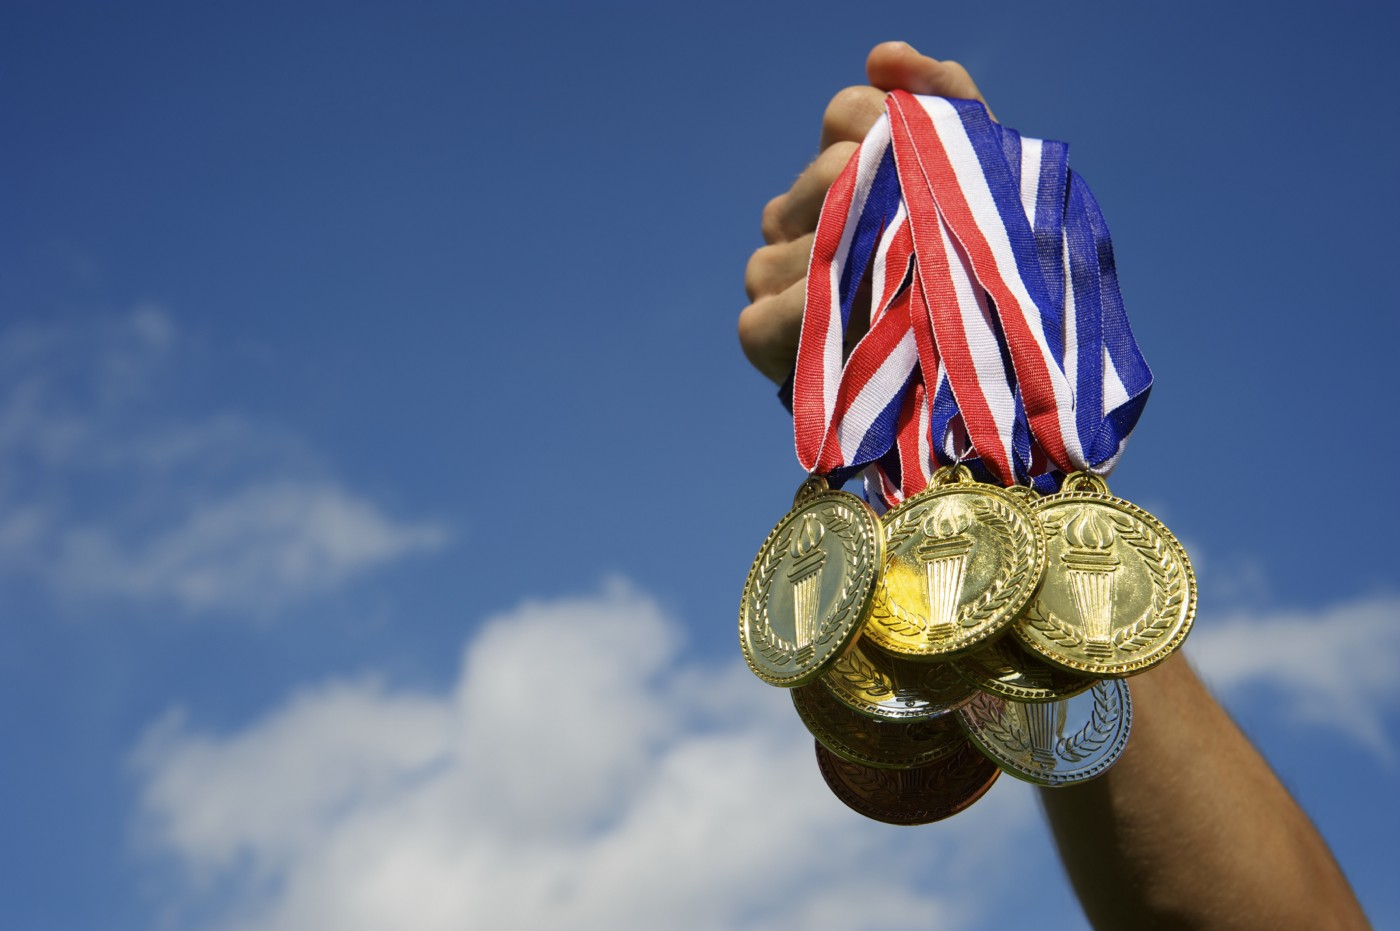 A hand holds up a bunch of gold, silver, and bronze medals against a bright blue sky.